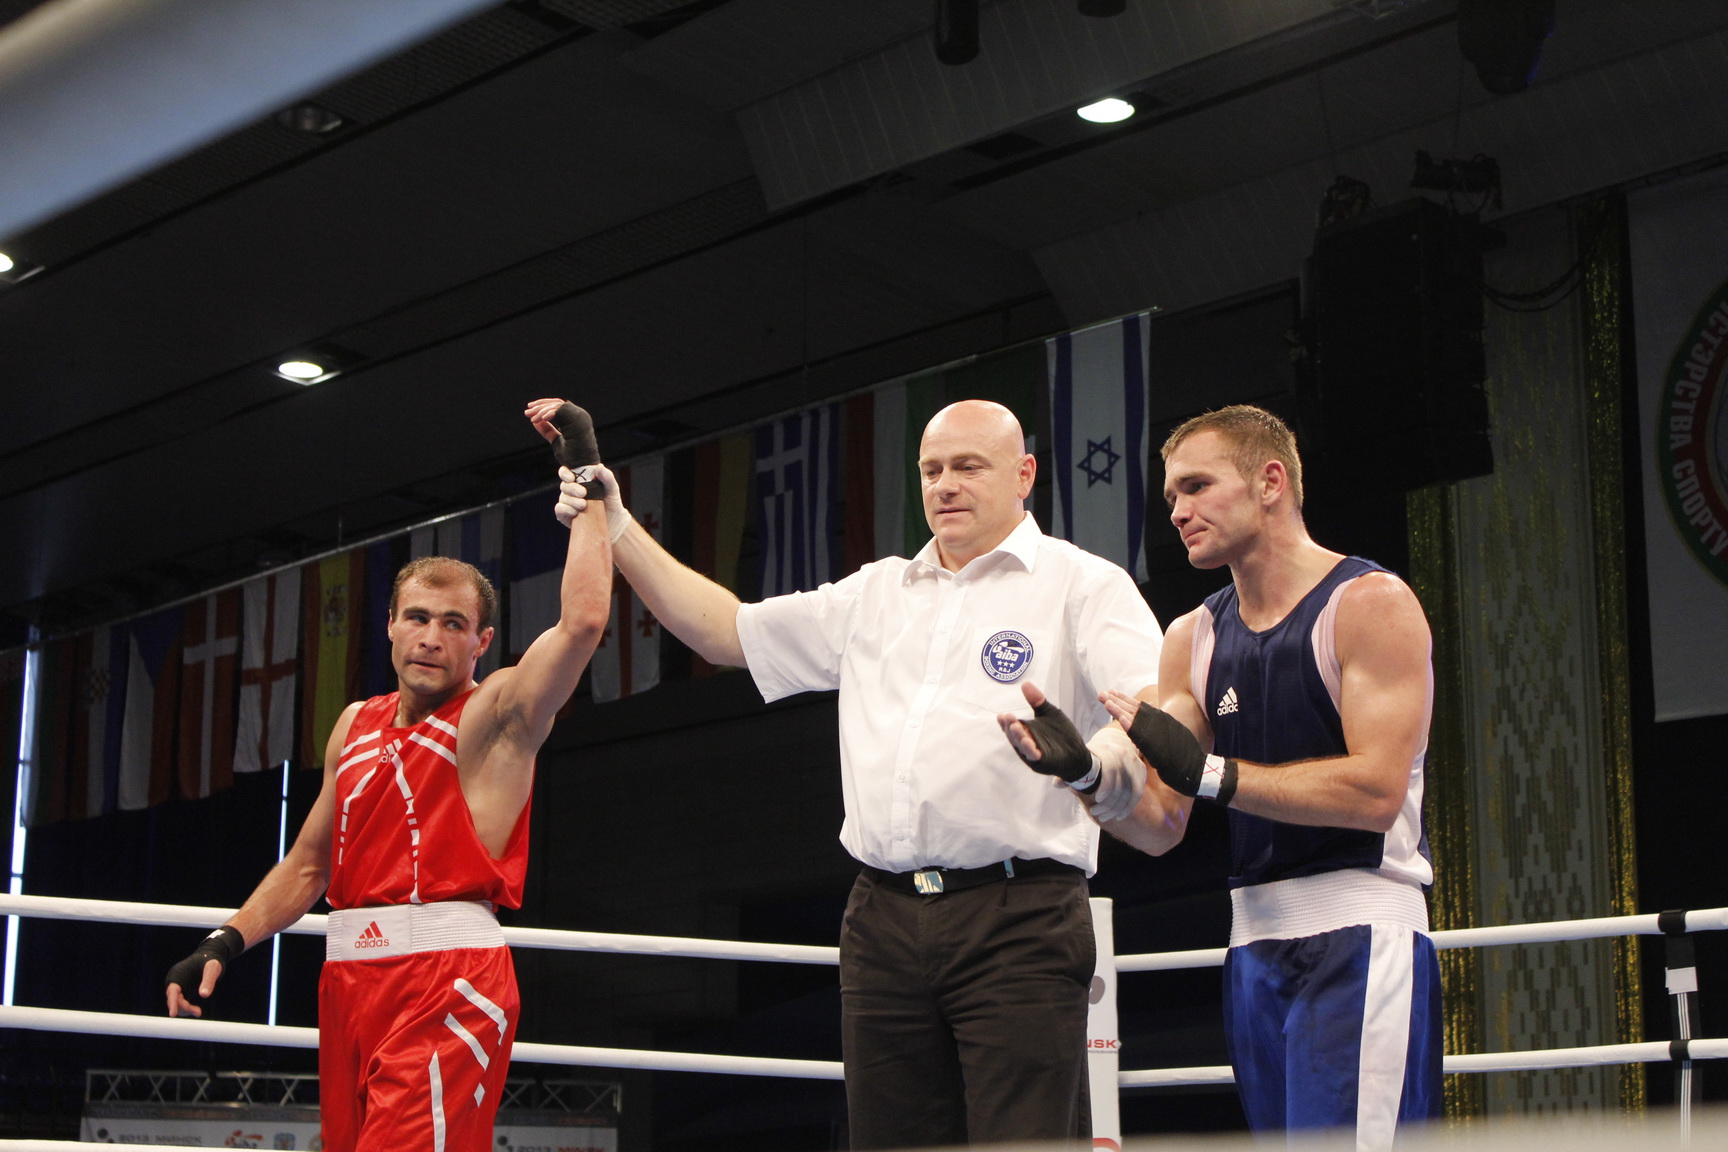 Nikita Ivanov - Russian boxer, European champion in 2013 in the category of 81 kg